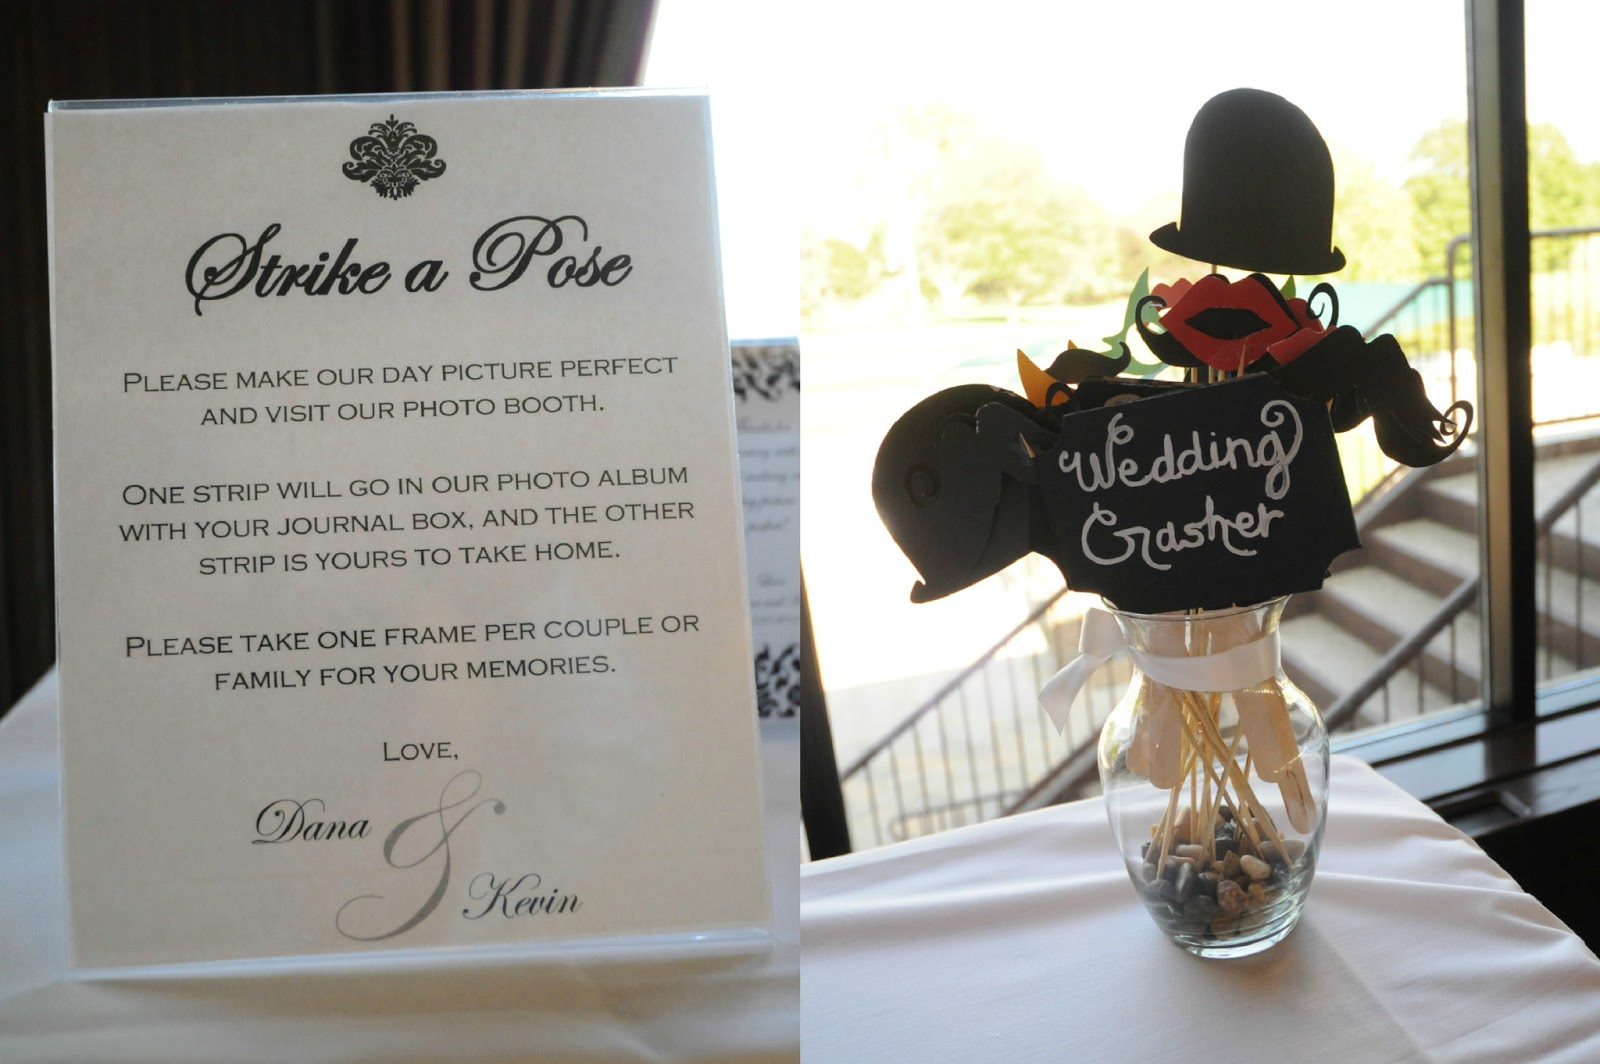 Wedding Photo Booth Ideas